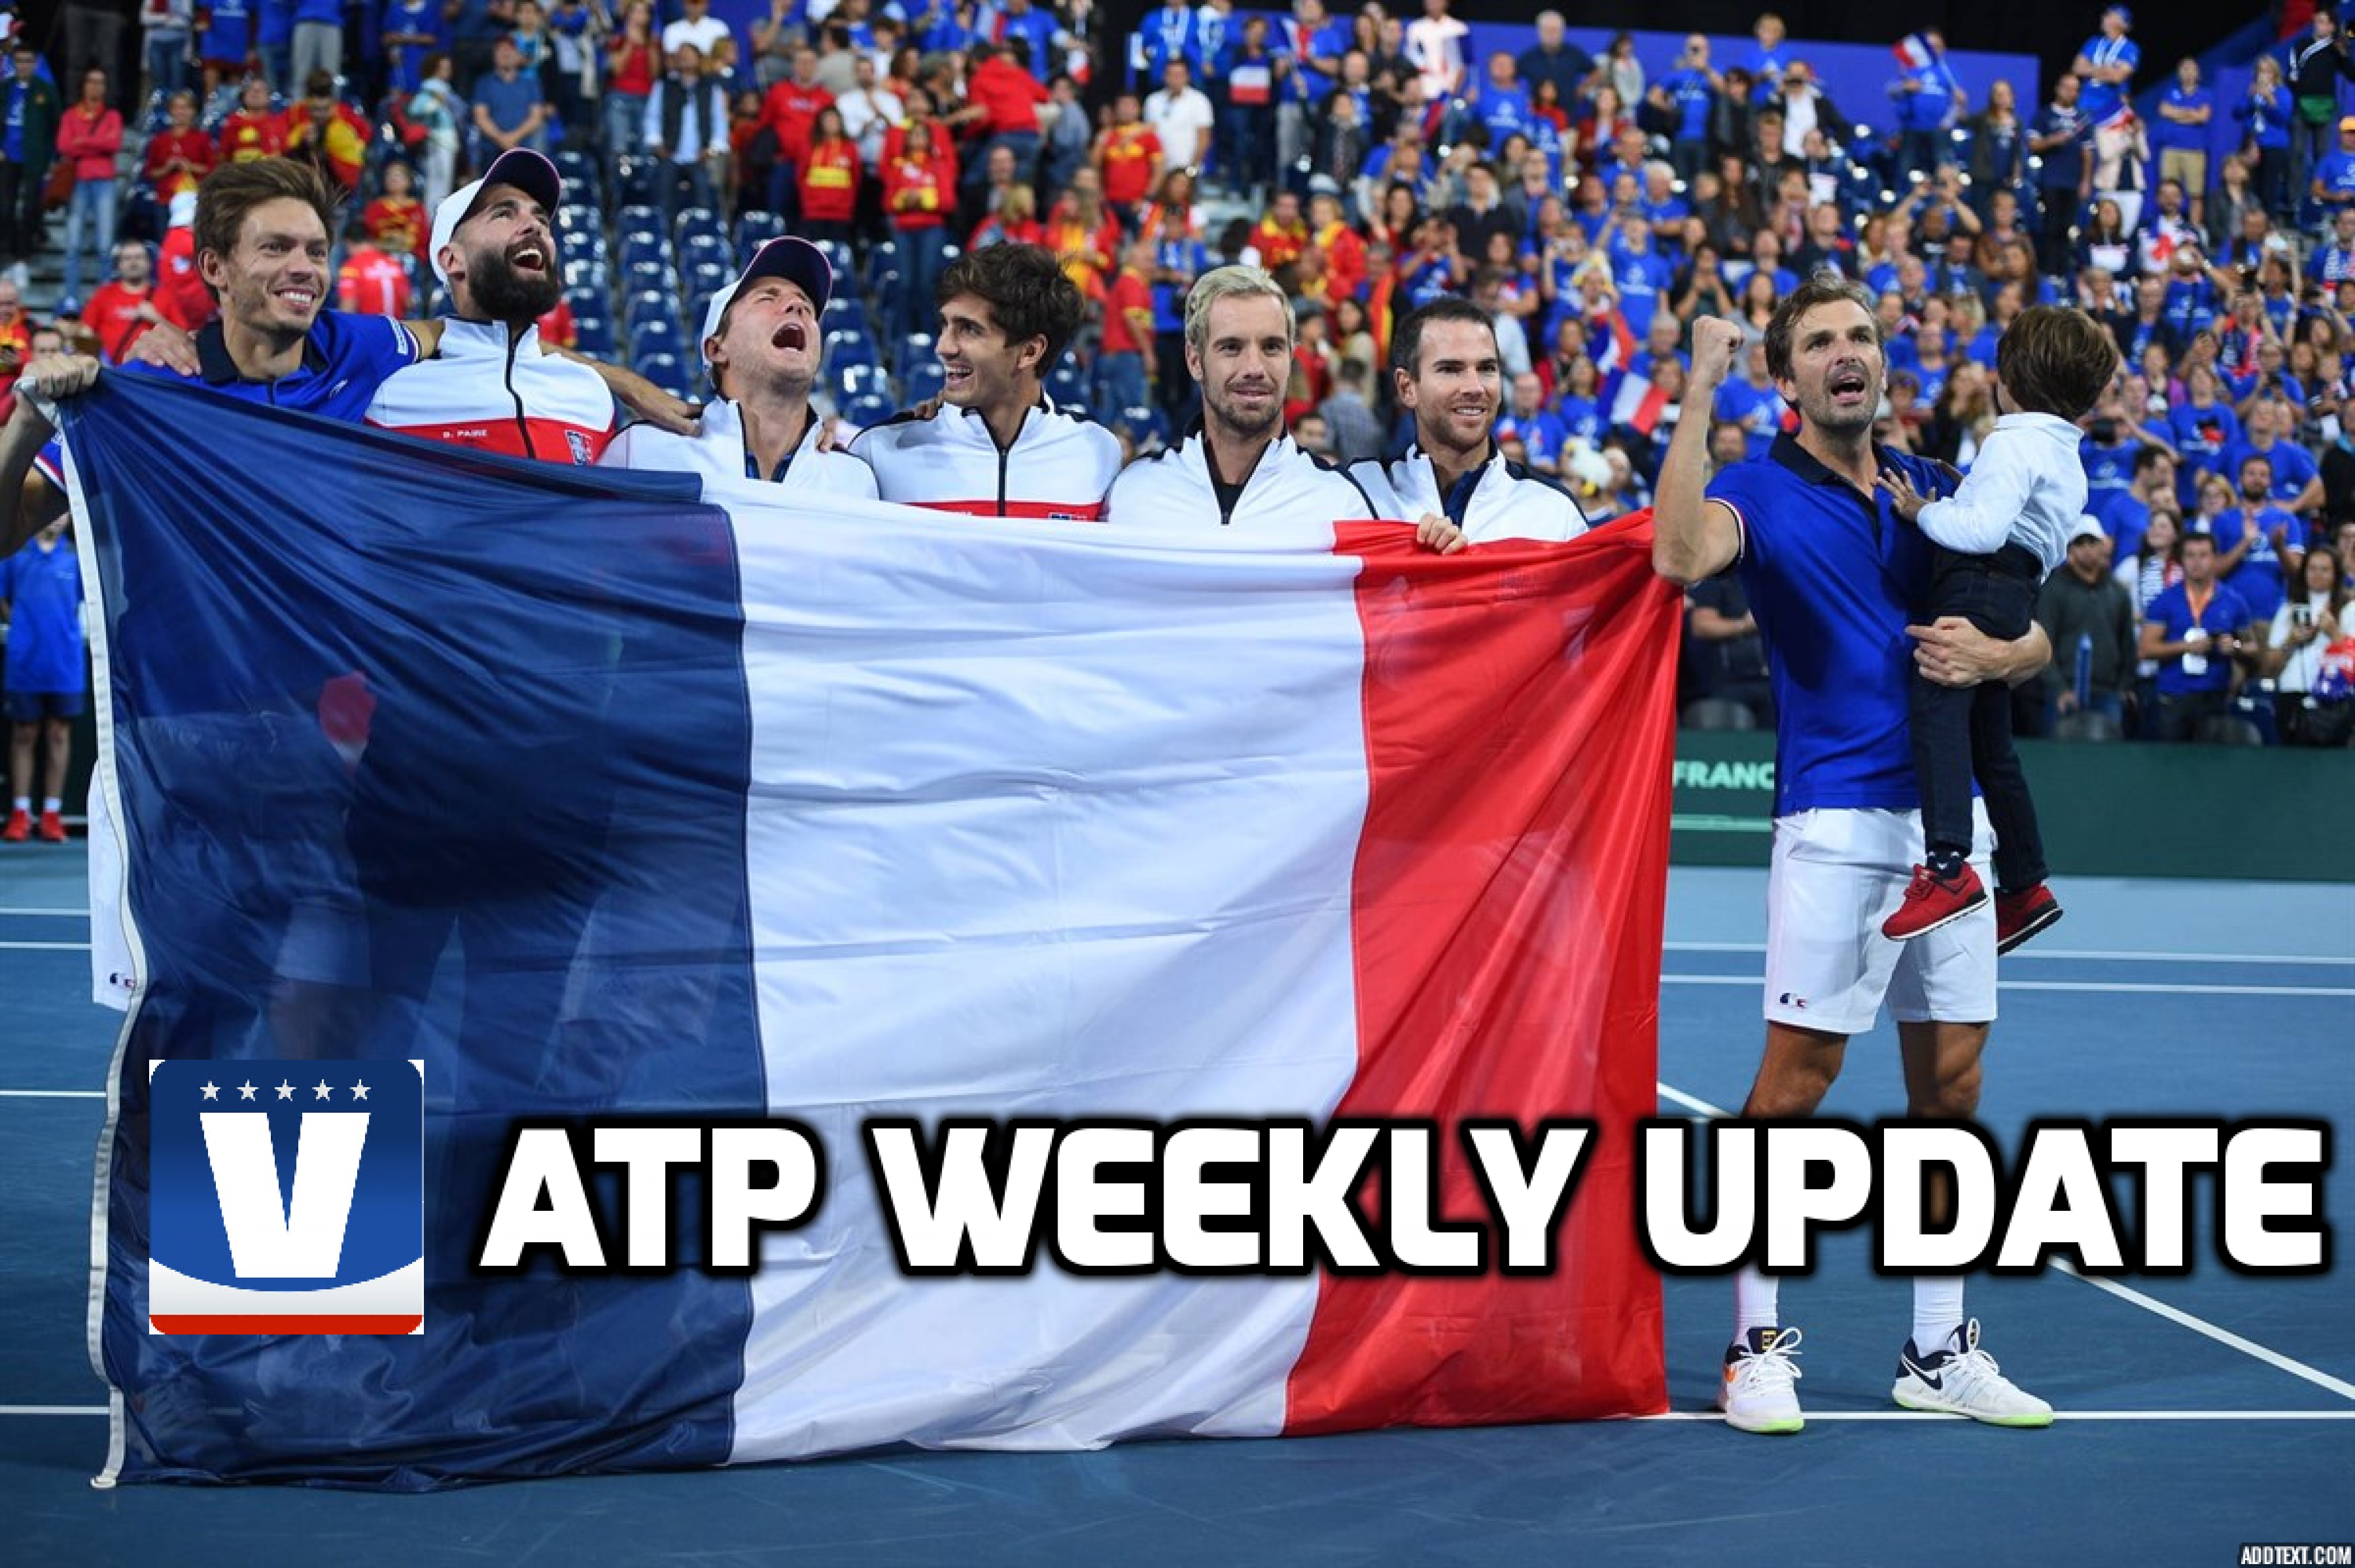 ATP Weekly Update week 37: France to go for back-to-back Davis Cup title against Croatia